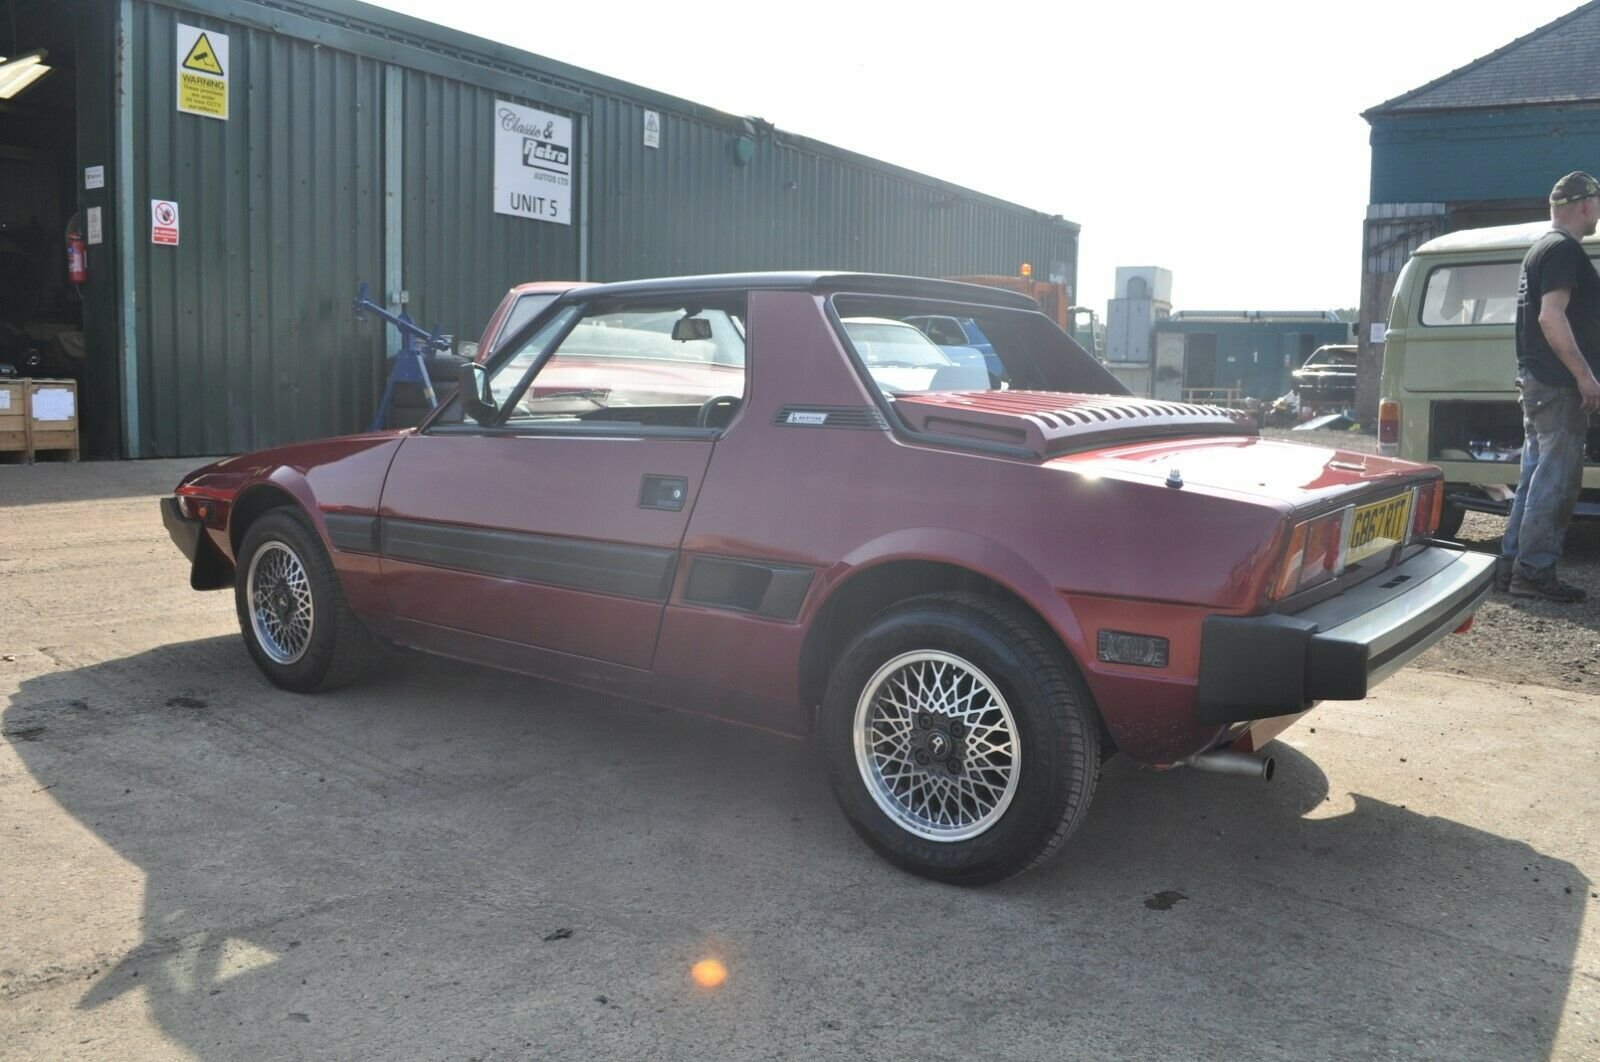 1989 FIAT X/19 GRAND FINALE LIMITED EDITION GOOD CONDITION For Sale (picture 5 of 6)